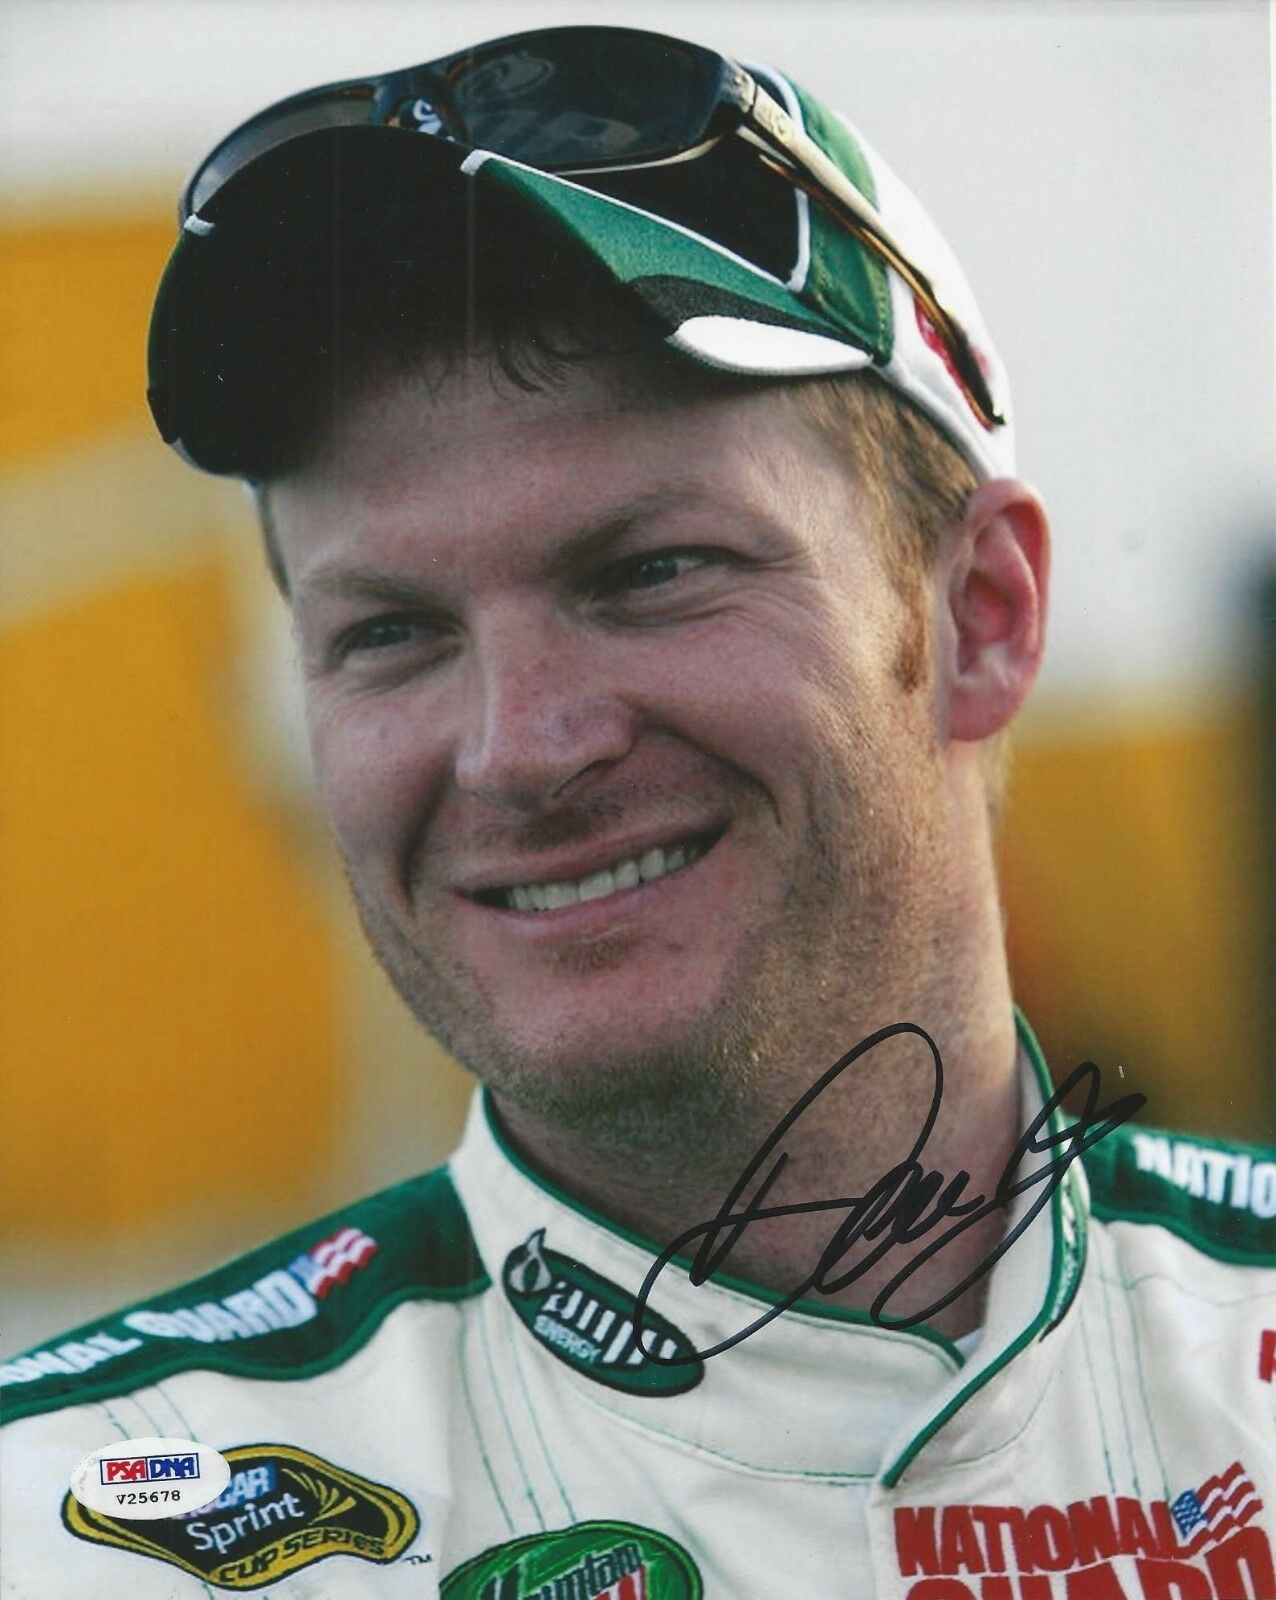 Dale Earnhardt Jr. Signed 8x10 Photo PSA/DNA #V25678